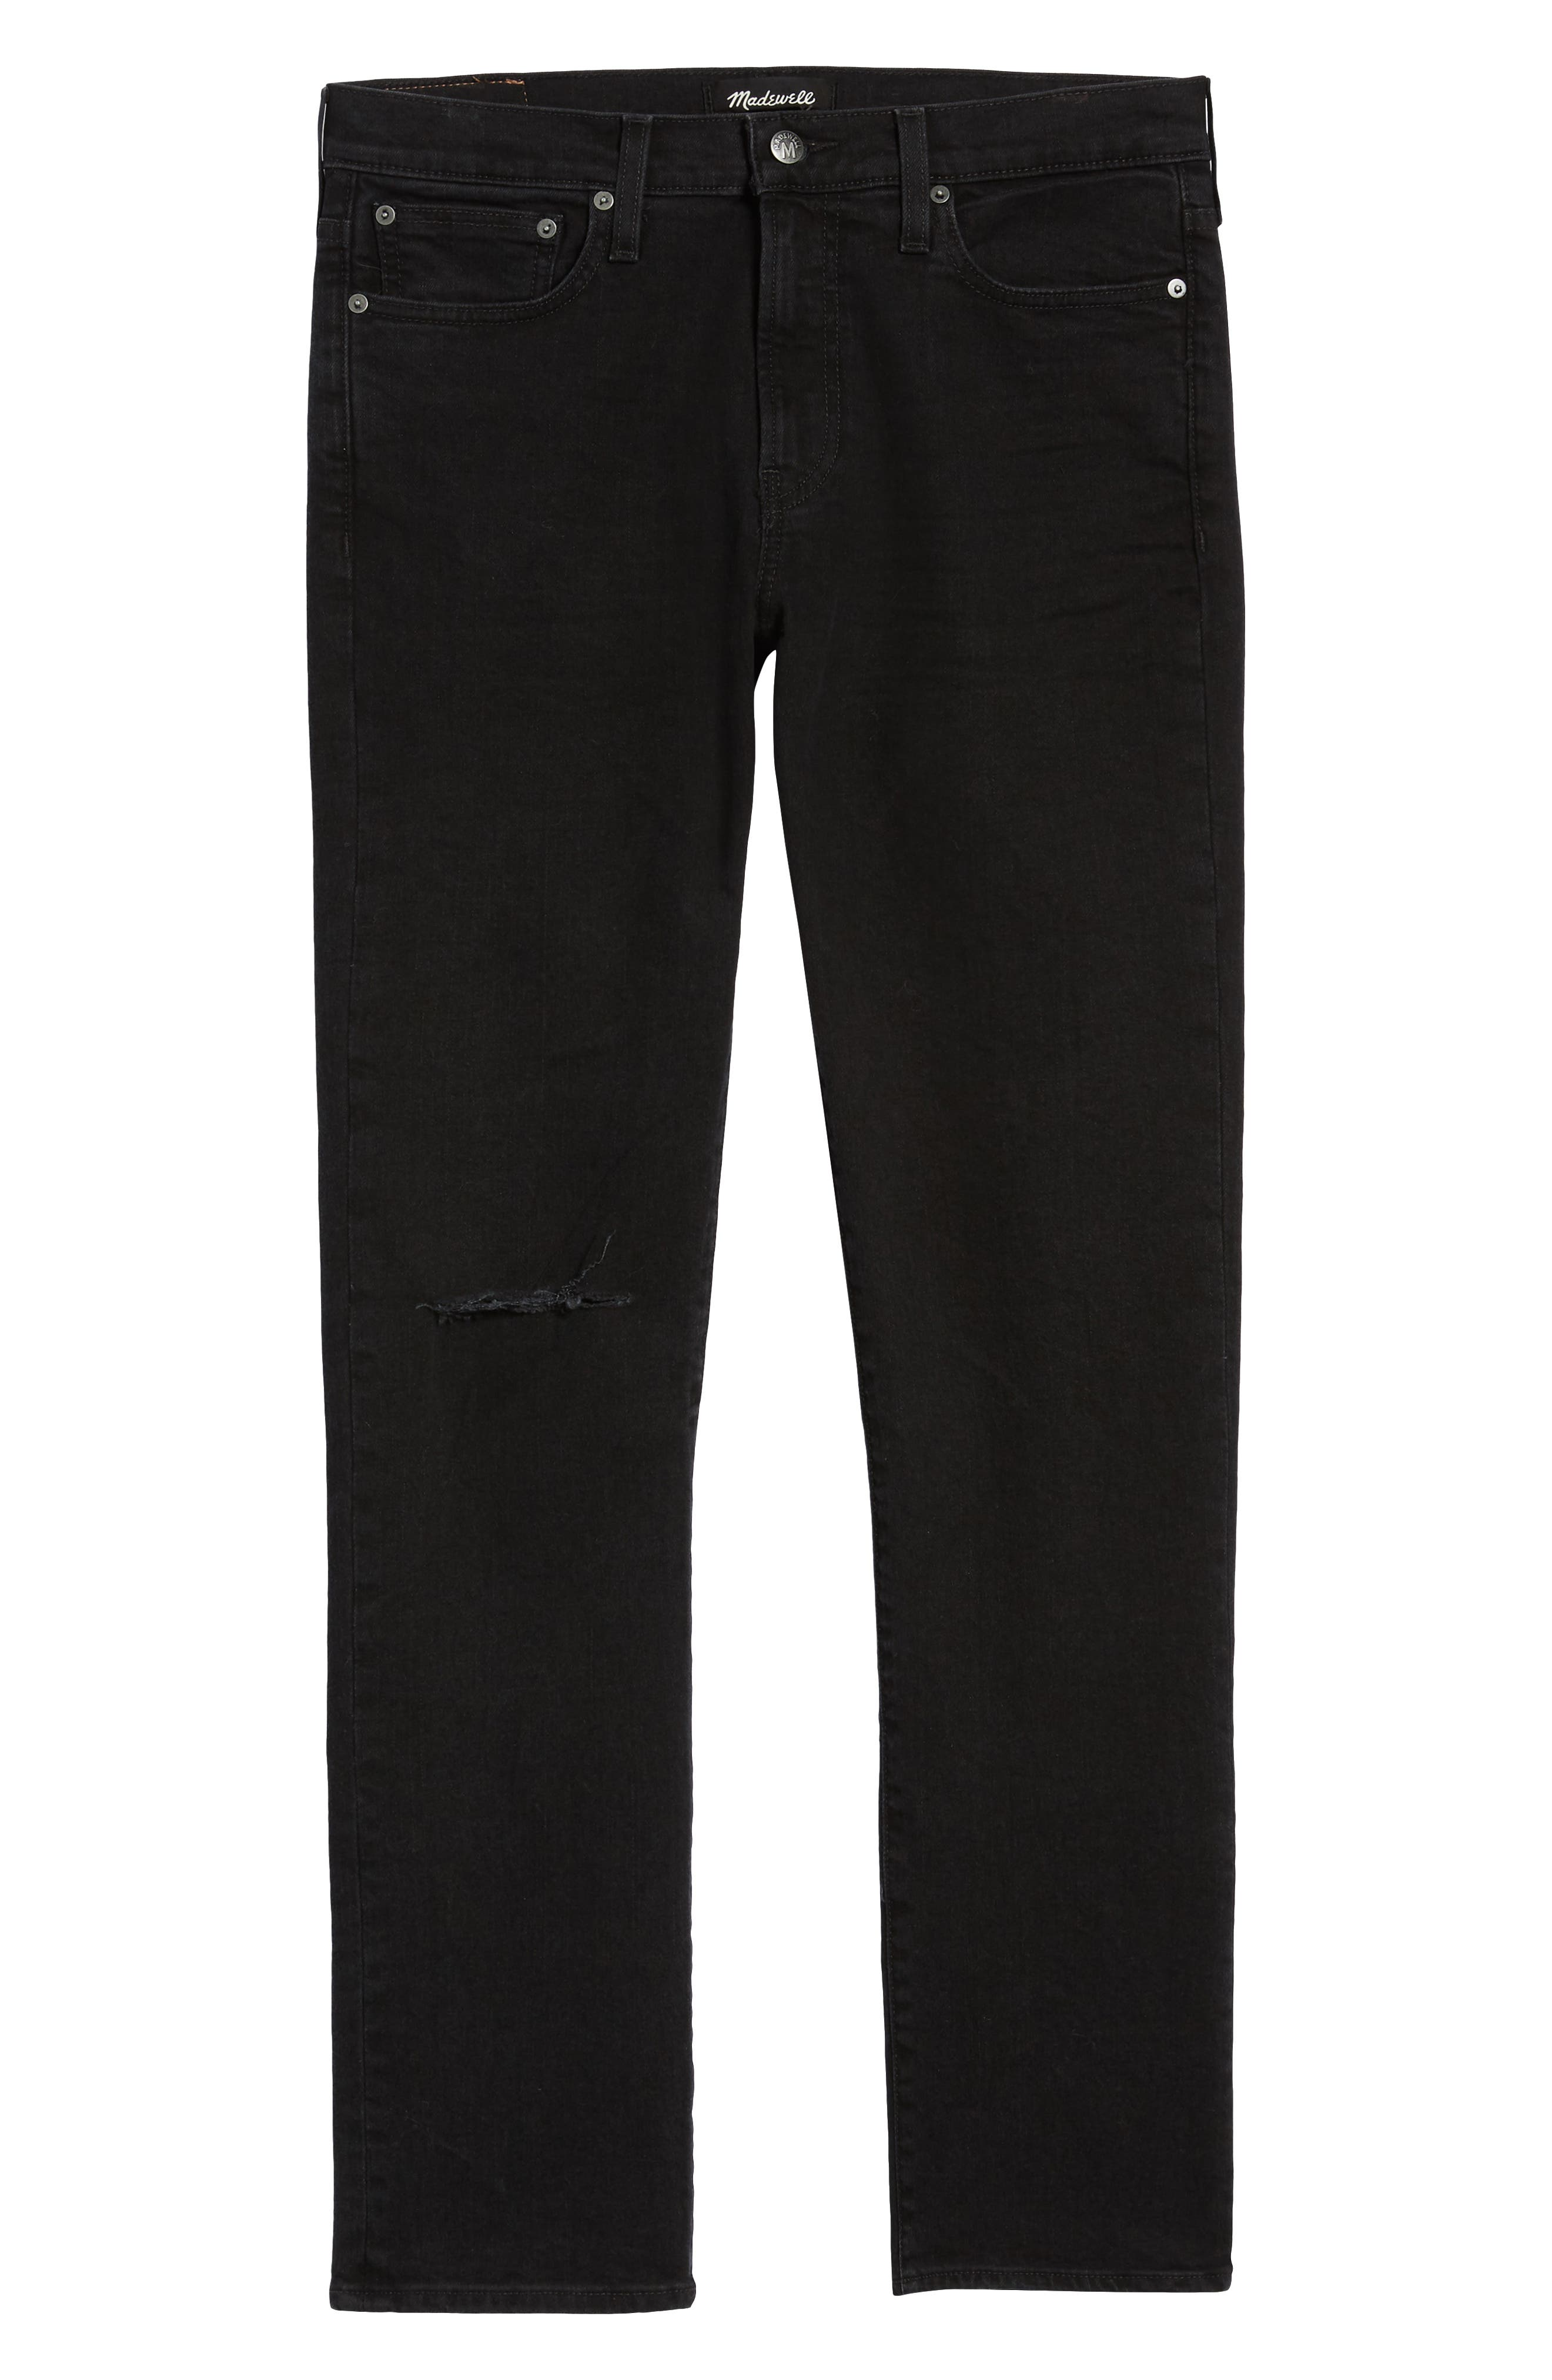 Ripped Skinny Fit Jeans,                             Alternate thumbnail 7, color,                             BROOKLYN WASH